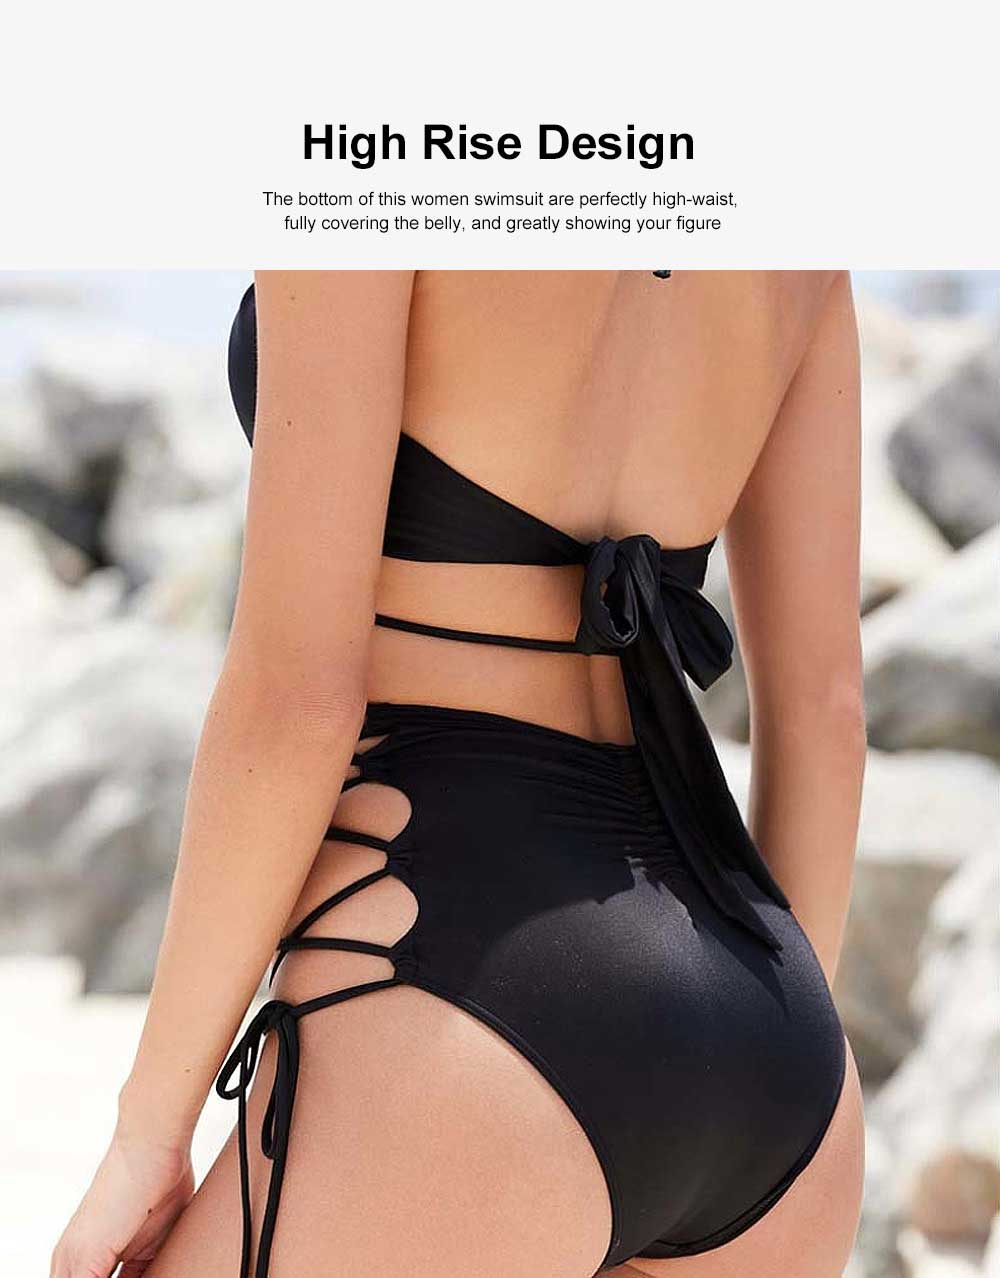 Women Retro Halter Neck Fashionable High Waist Two Piece Bikini Set Swimsuit with Stylish Design 3